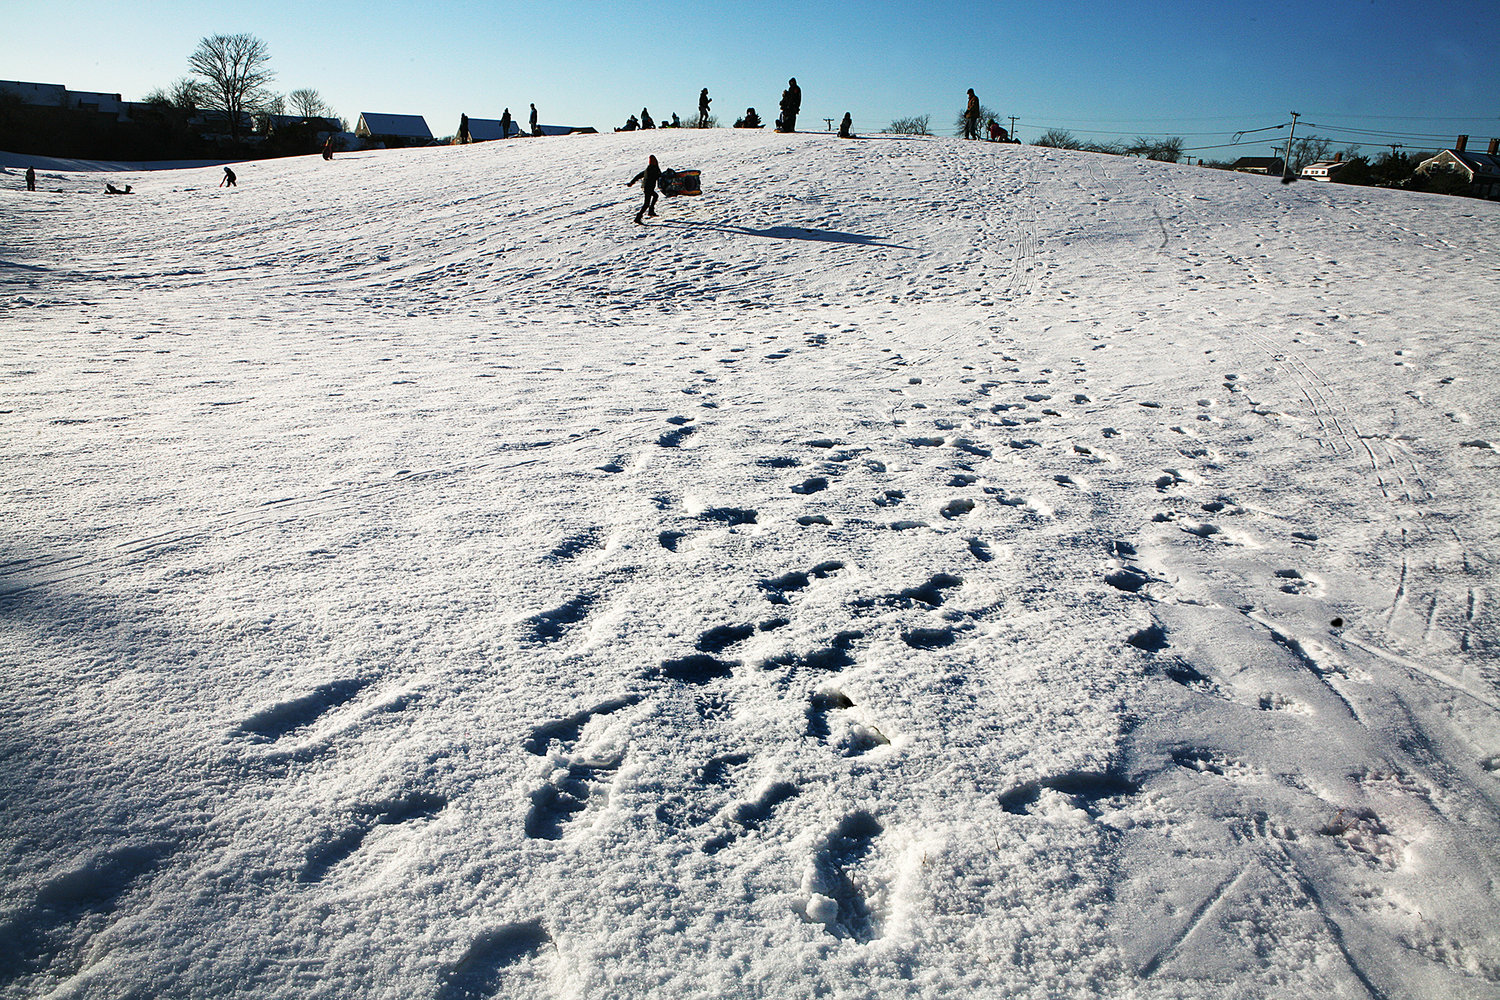 MONDAY, FEBRUARY 8, 2021 -- Footprints in the snow and sledding off Quaker Road on Monday following Sunday's snow storm. Photo by Ray K. Saunders